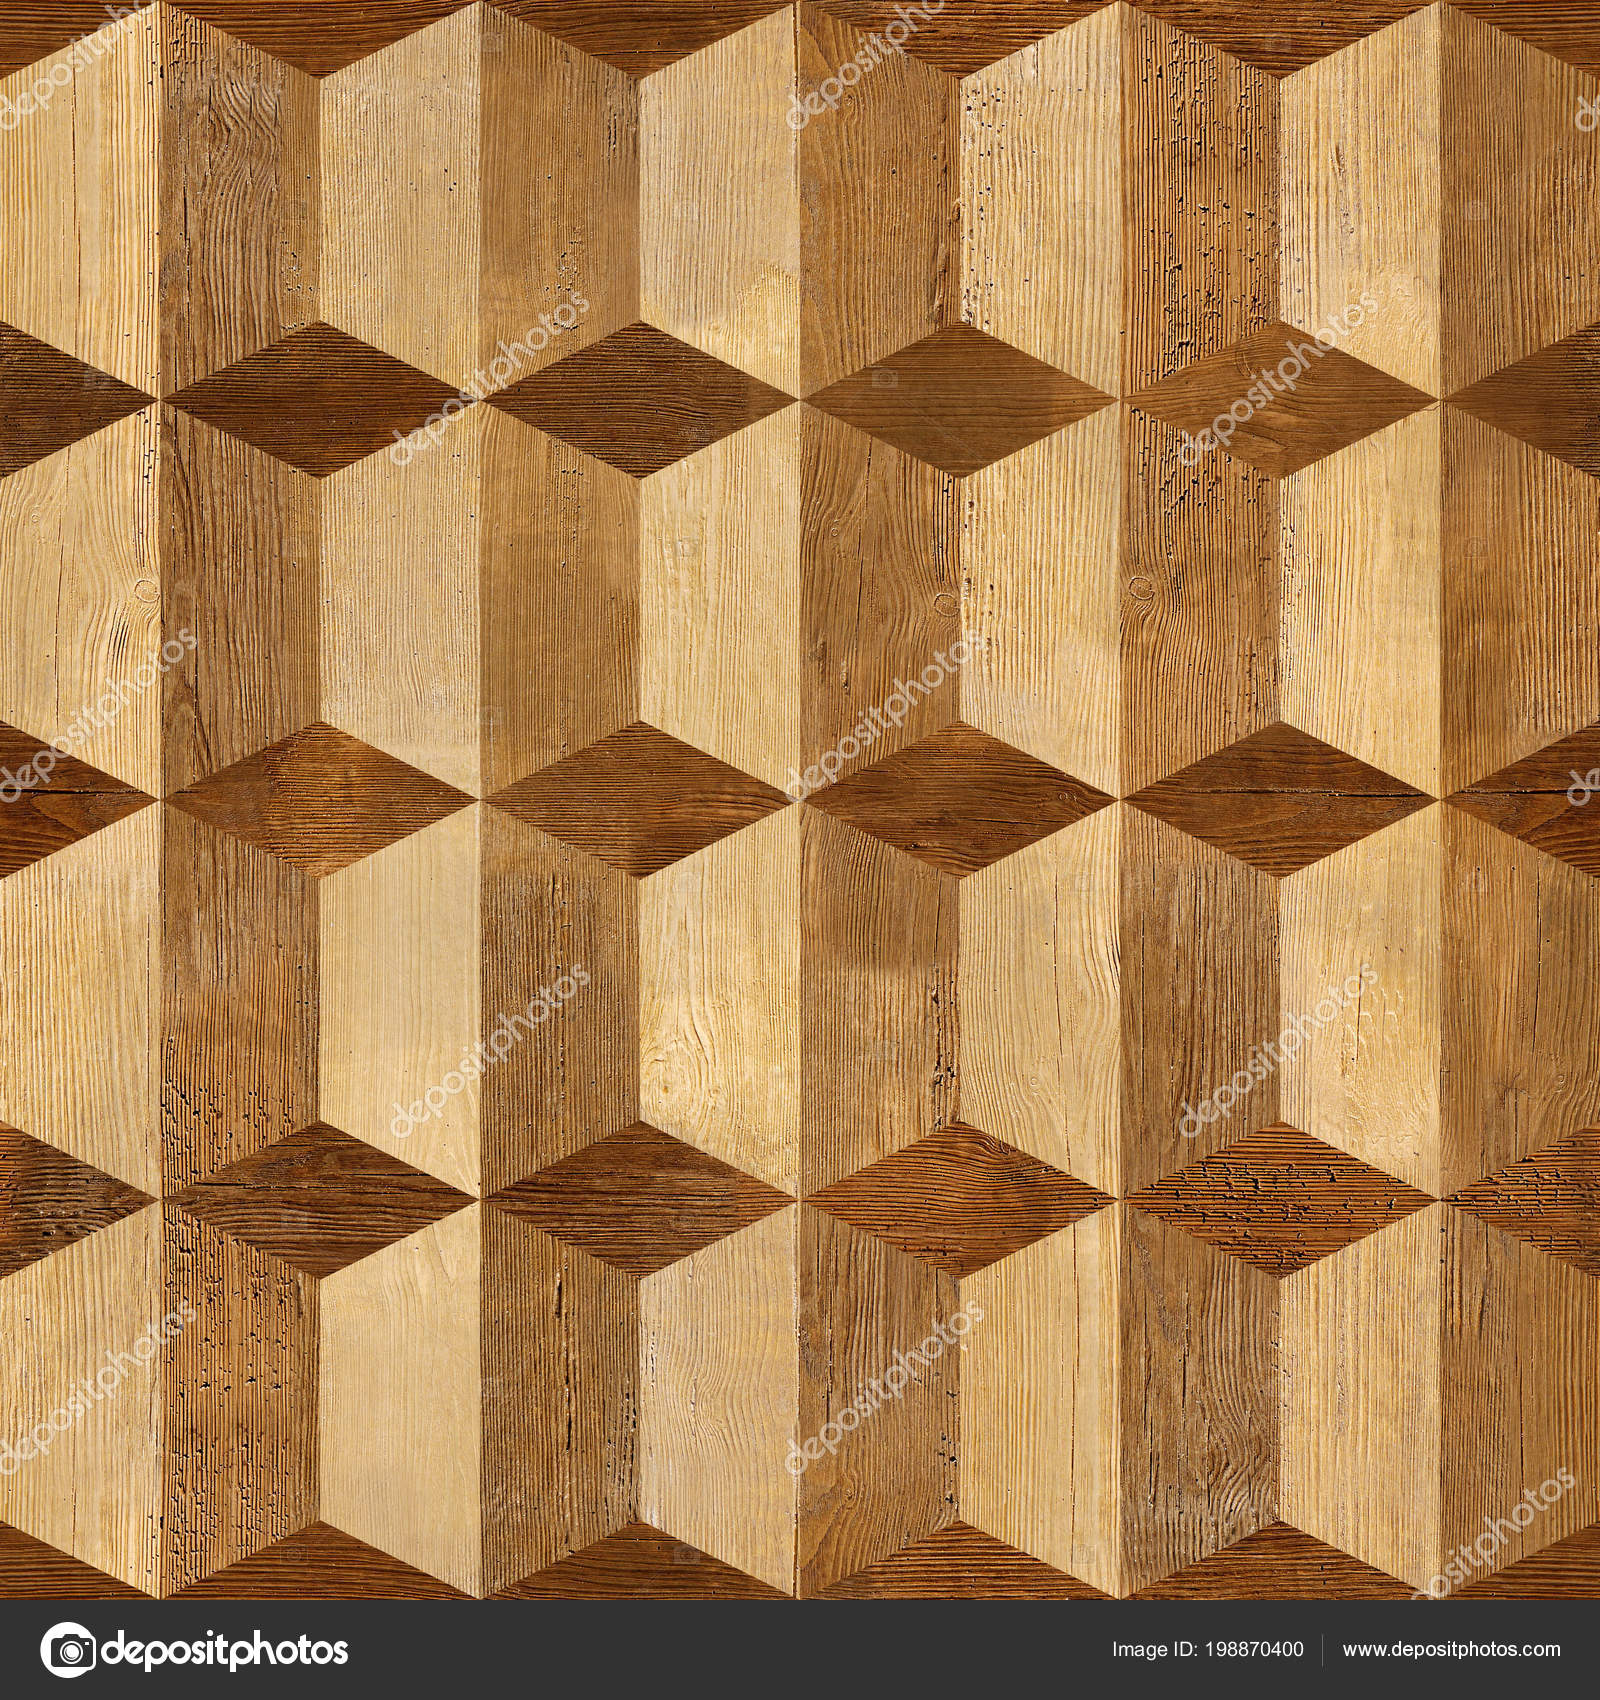 background wooden patterns different colors seamless background texture repeating geometric